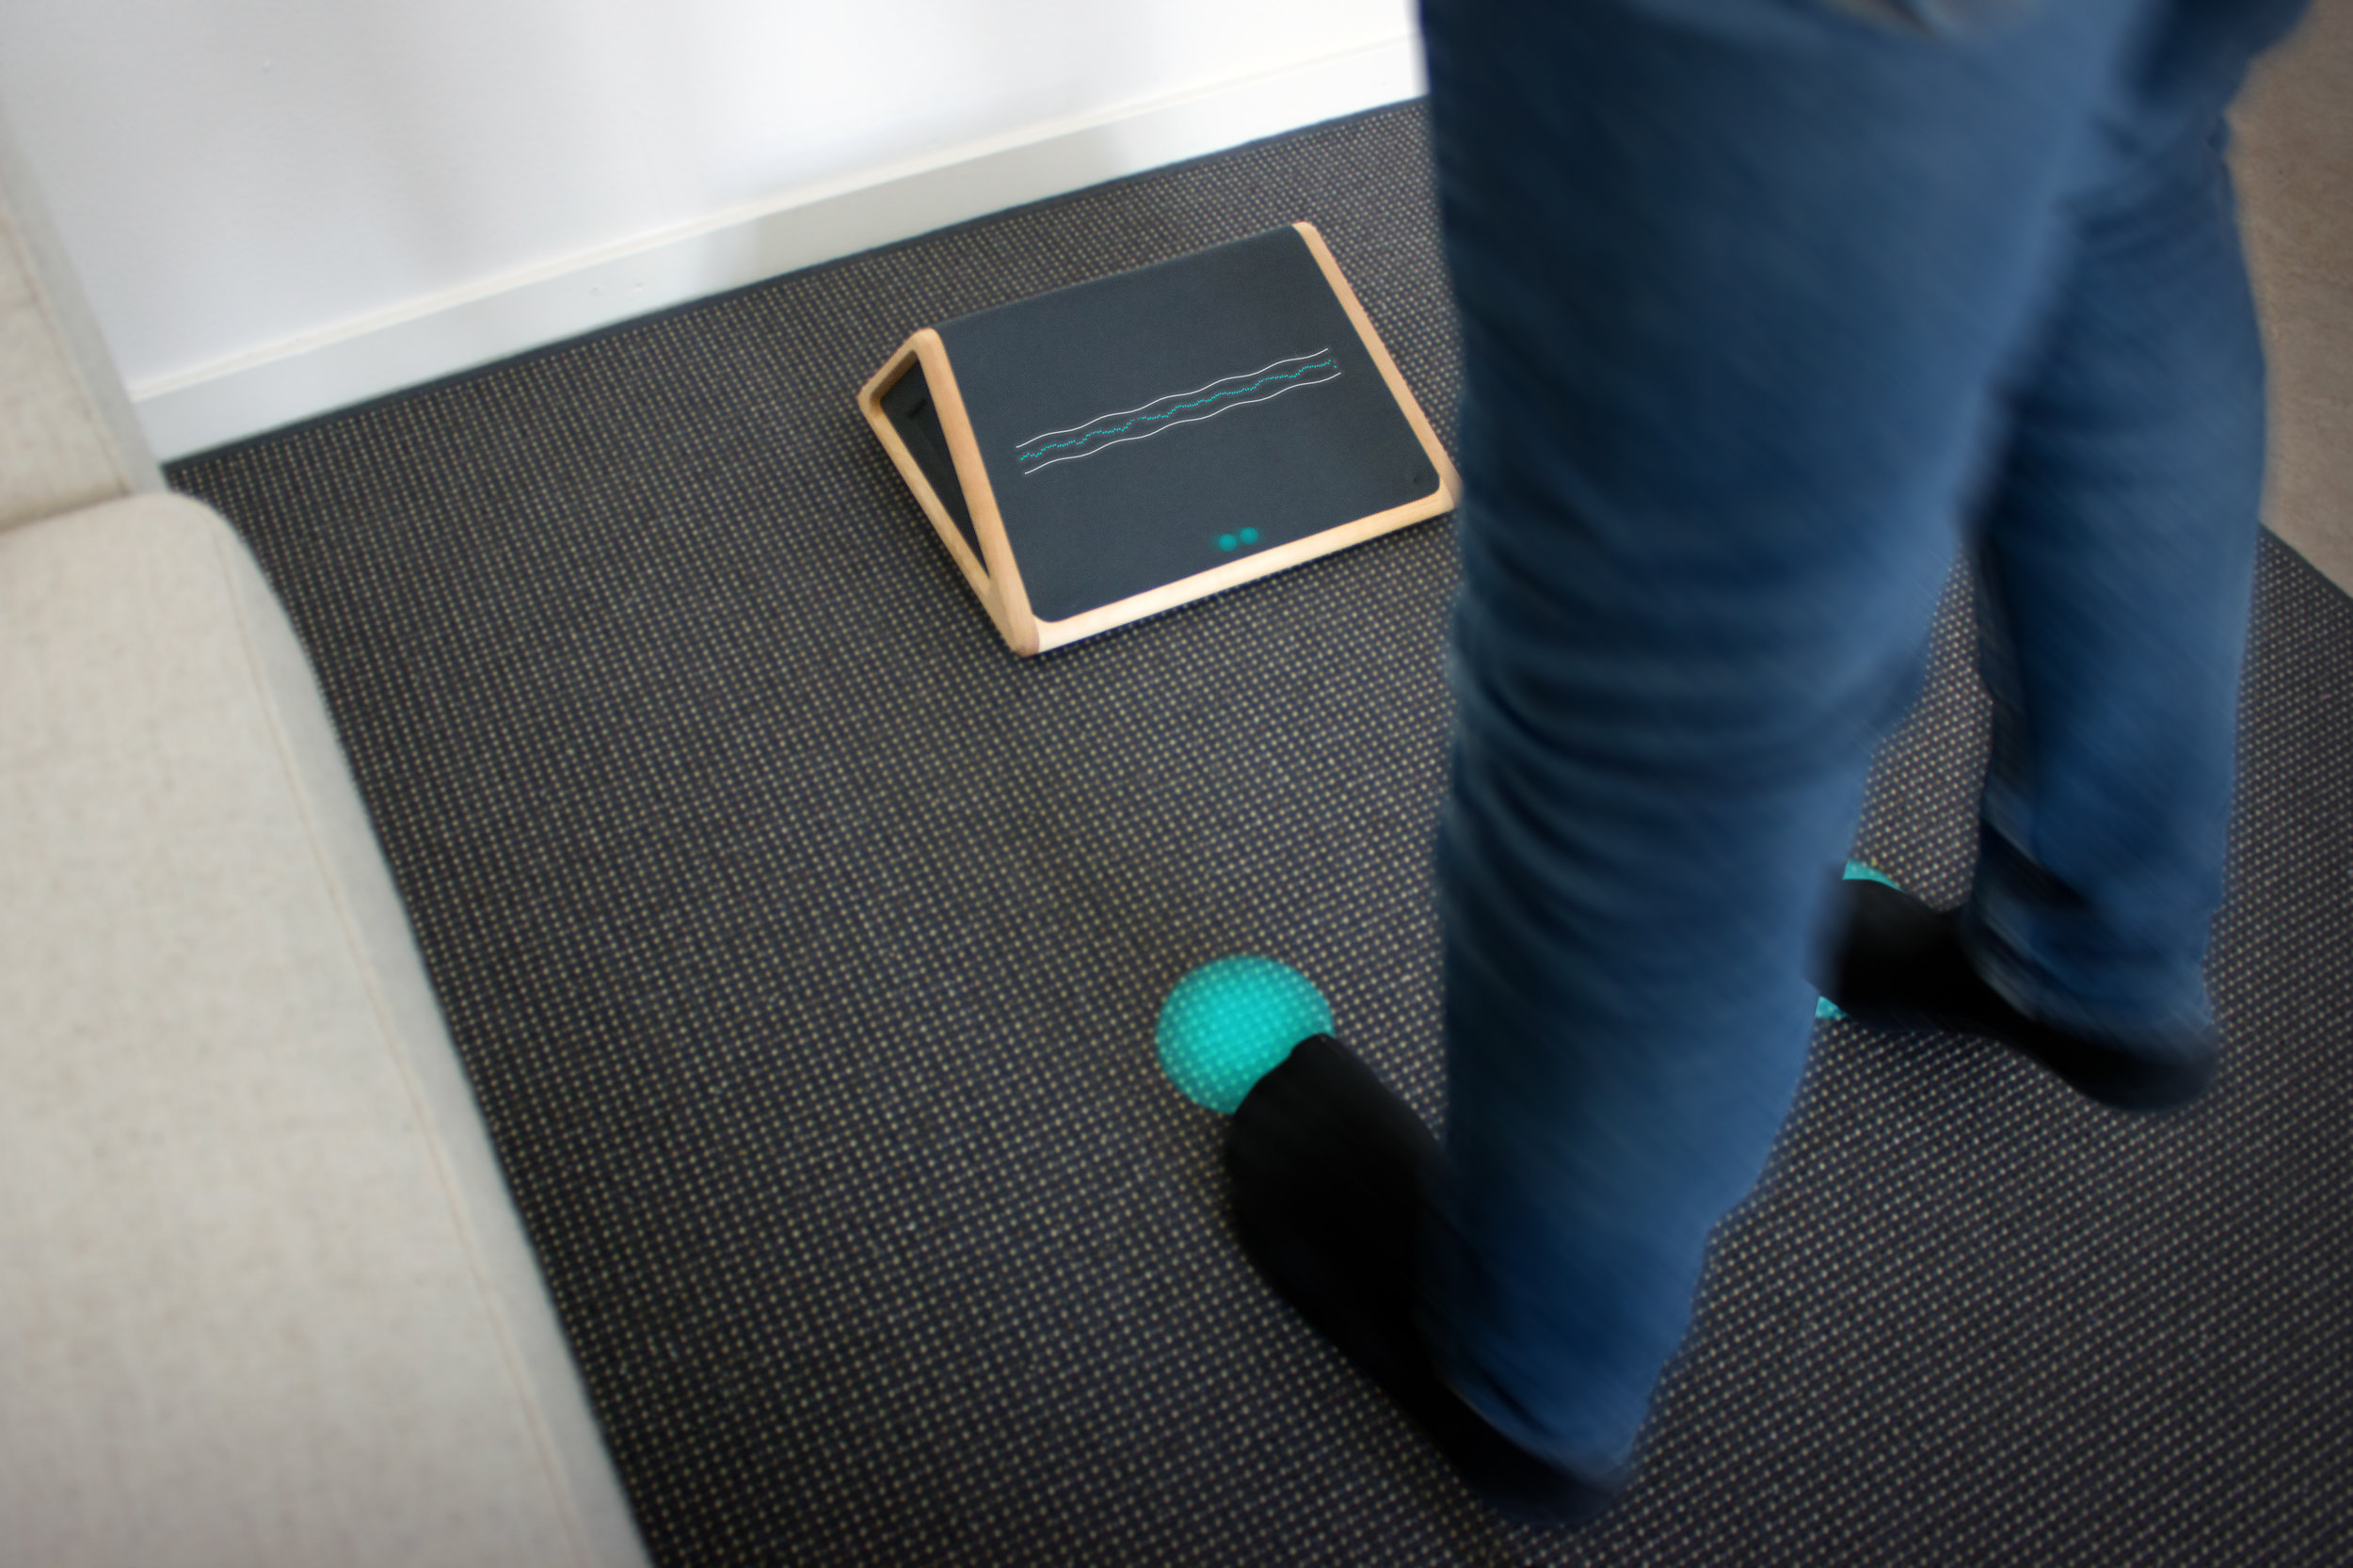 3. Projections from the device assist the feet movements